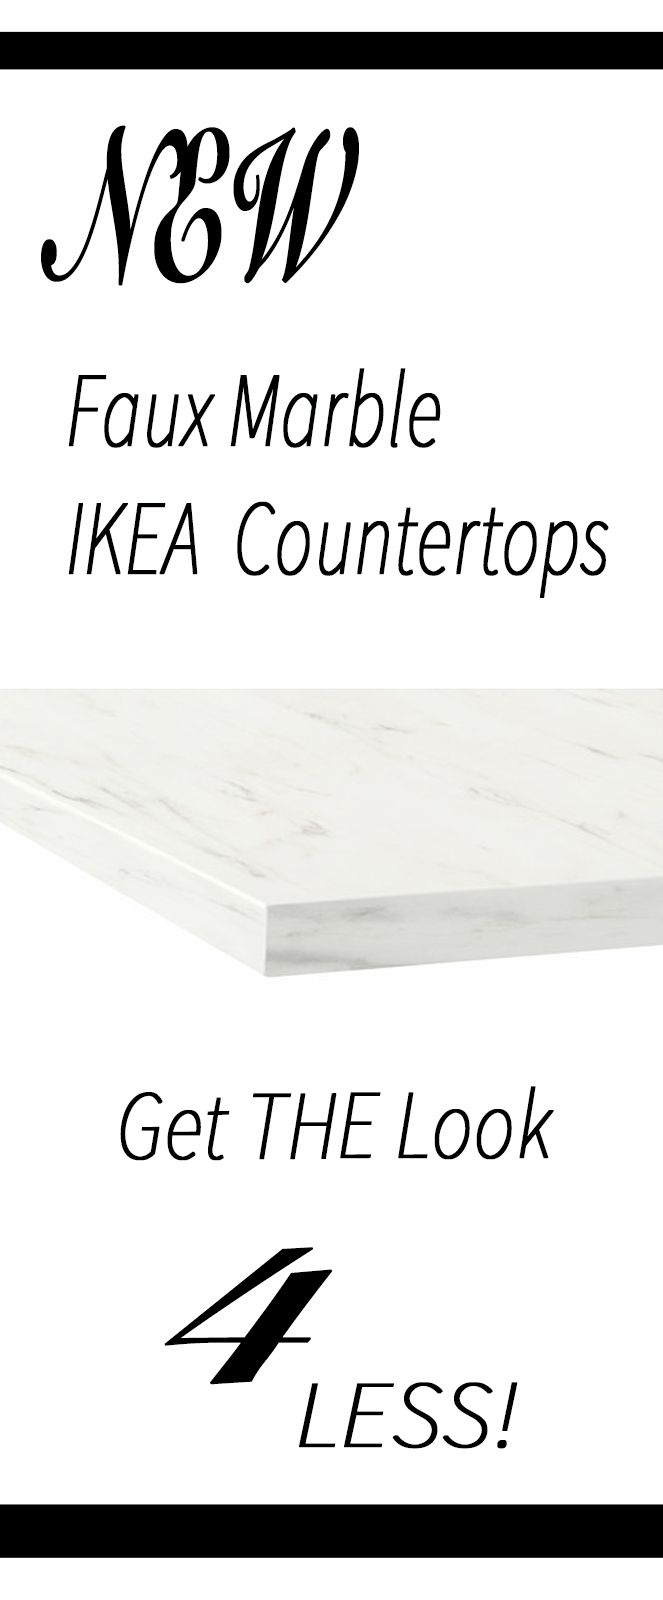 New inexpensive faux marble laminate countertops at Ikea! I wish these were around 5 years ago when I was re-doing my kitchen! Come learn more about them.